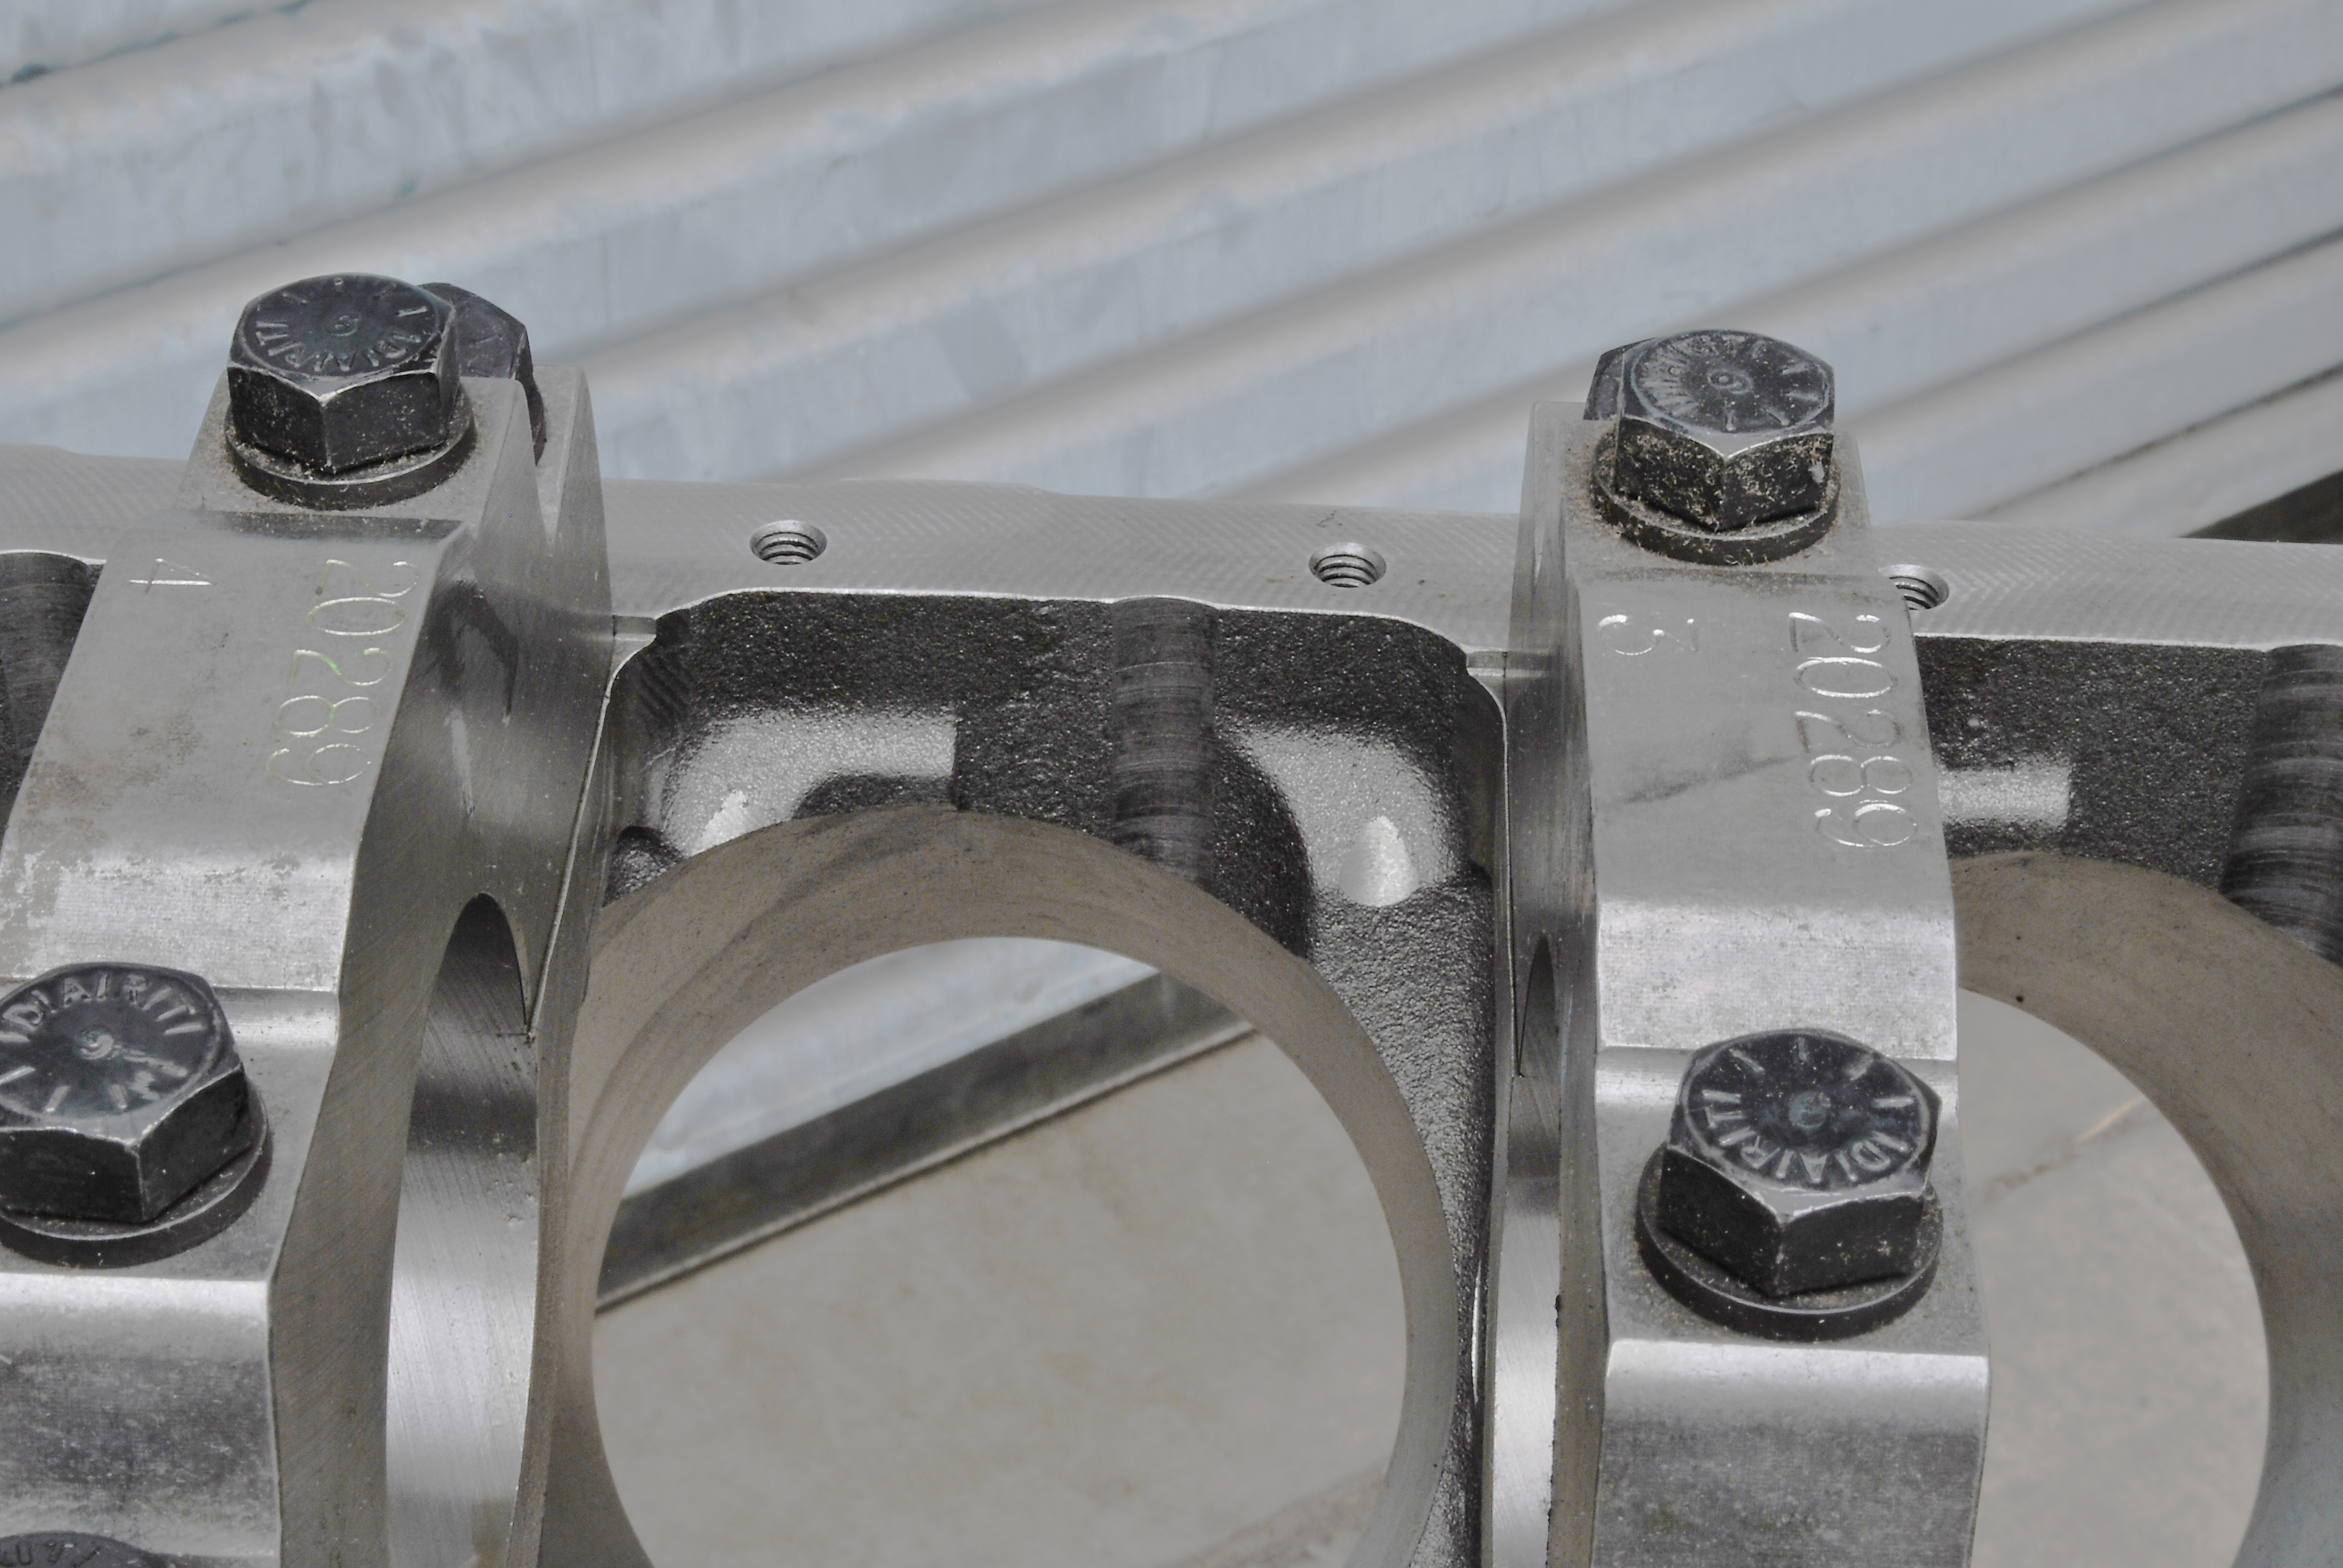 How to Clearance Your Block for a Stroker Crankshaft